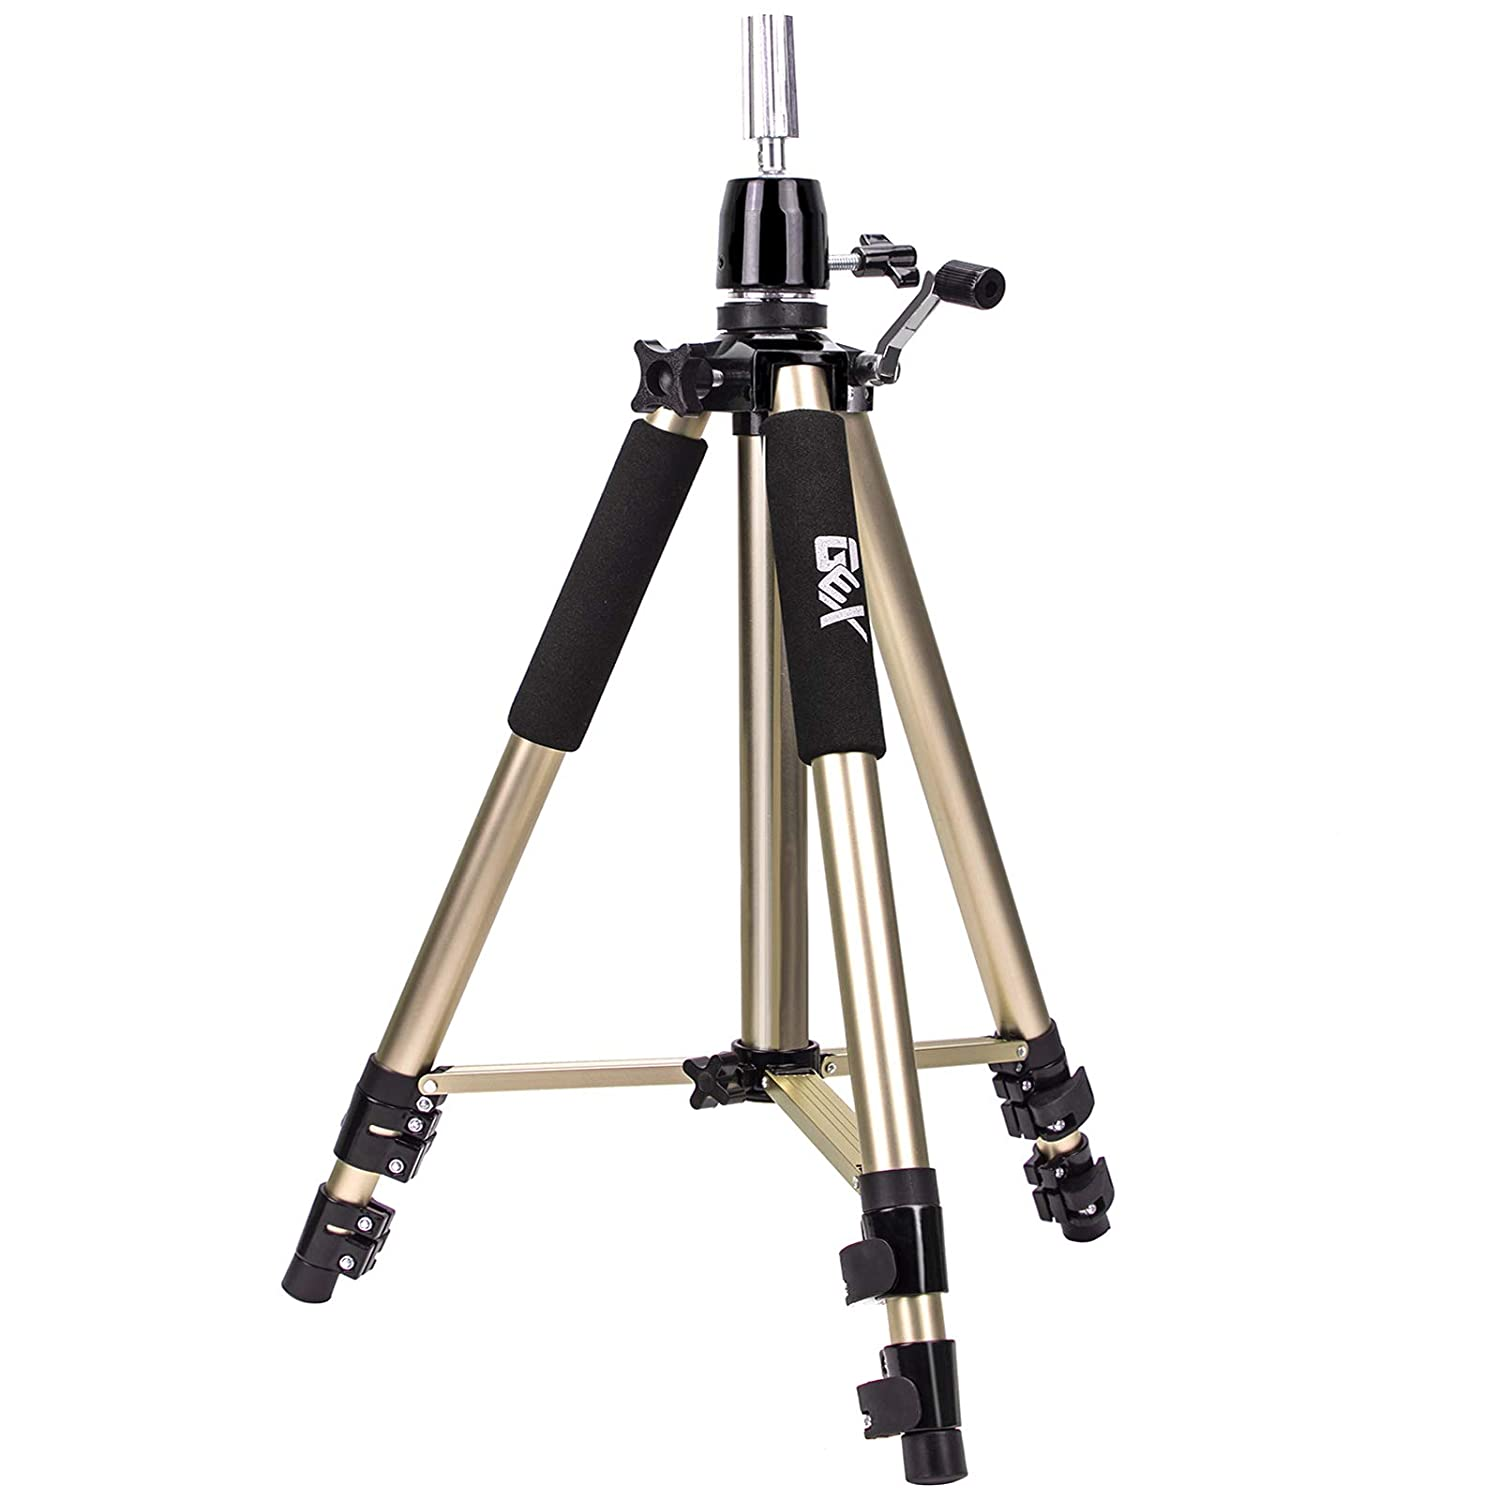 GEX Heavy Duty Canvas Block Head Tripod Cosmetology Training Doll Head Stand Mannequin Manikin Head Tripod Wig Stand With Travel Bag Gold Color GEX Worldwide